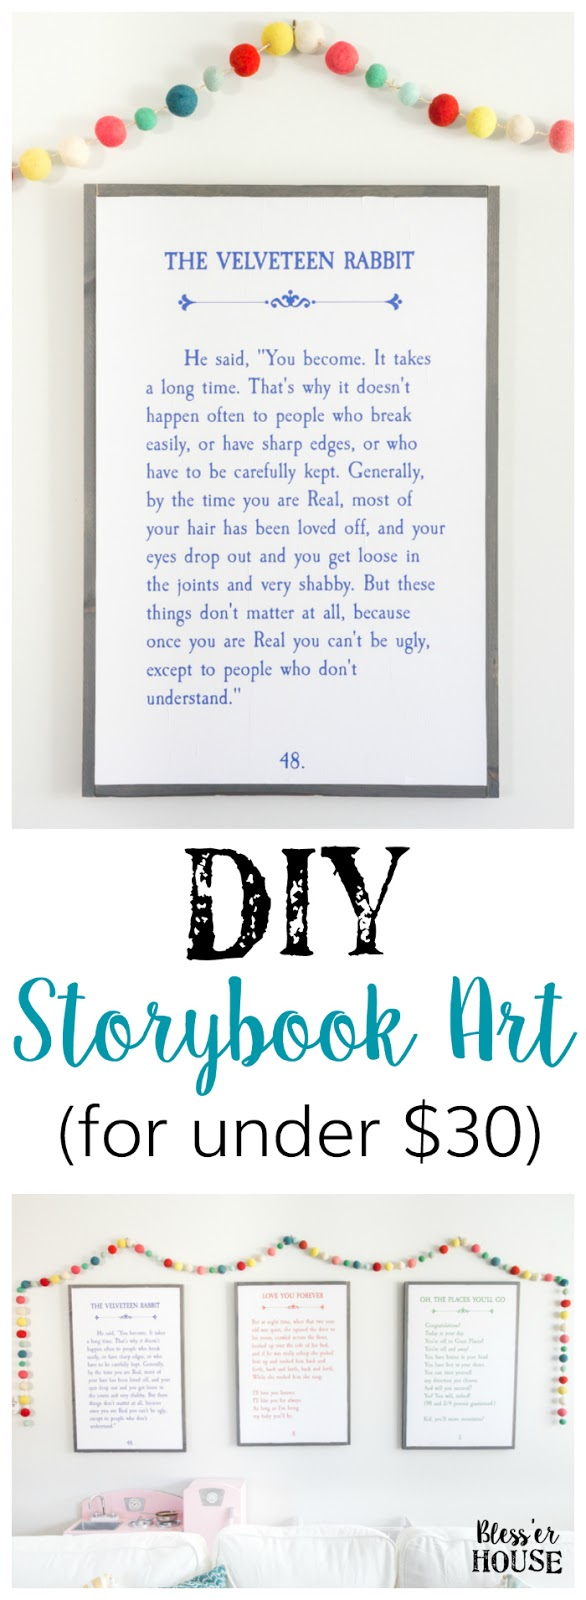 DIY Storybook wall art featured at Talk of the Town - www.knickoftime.net